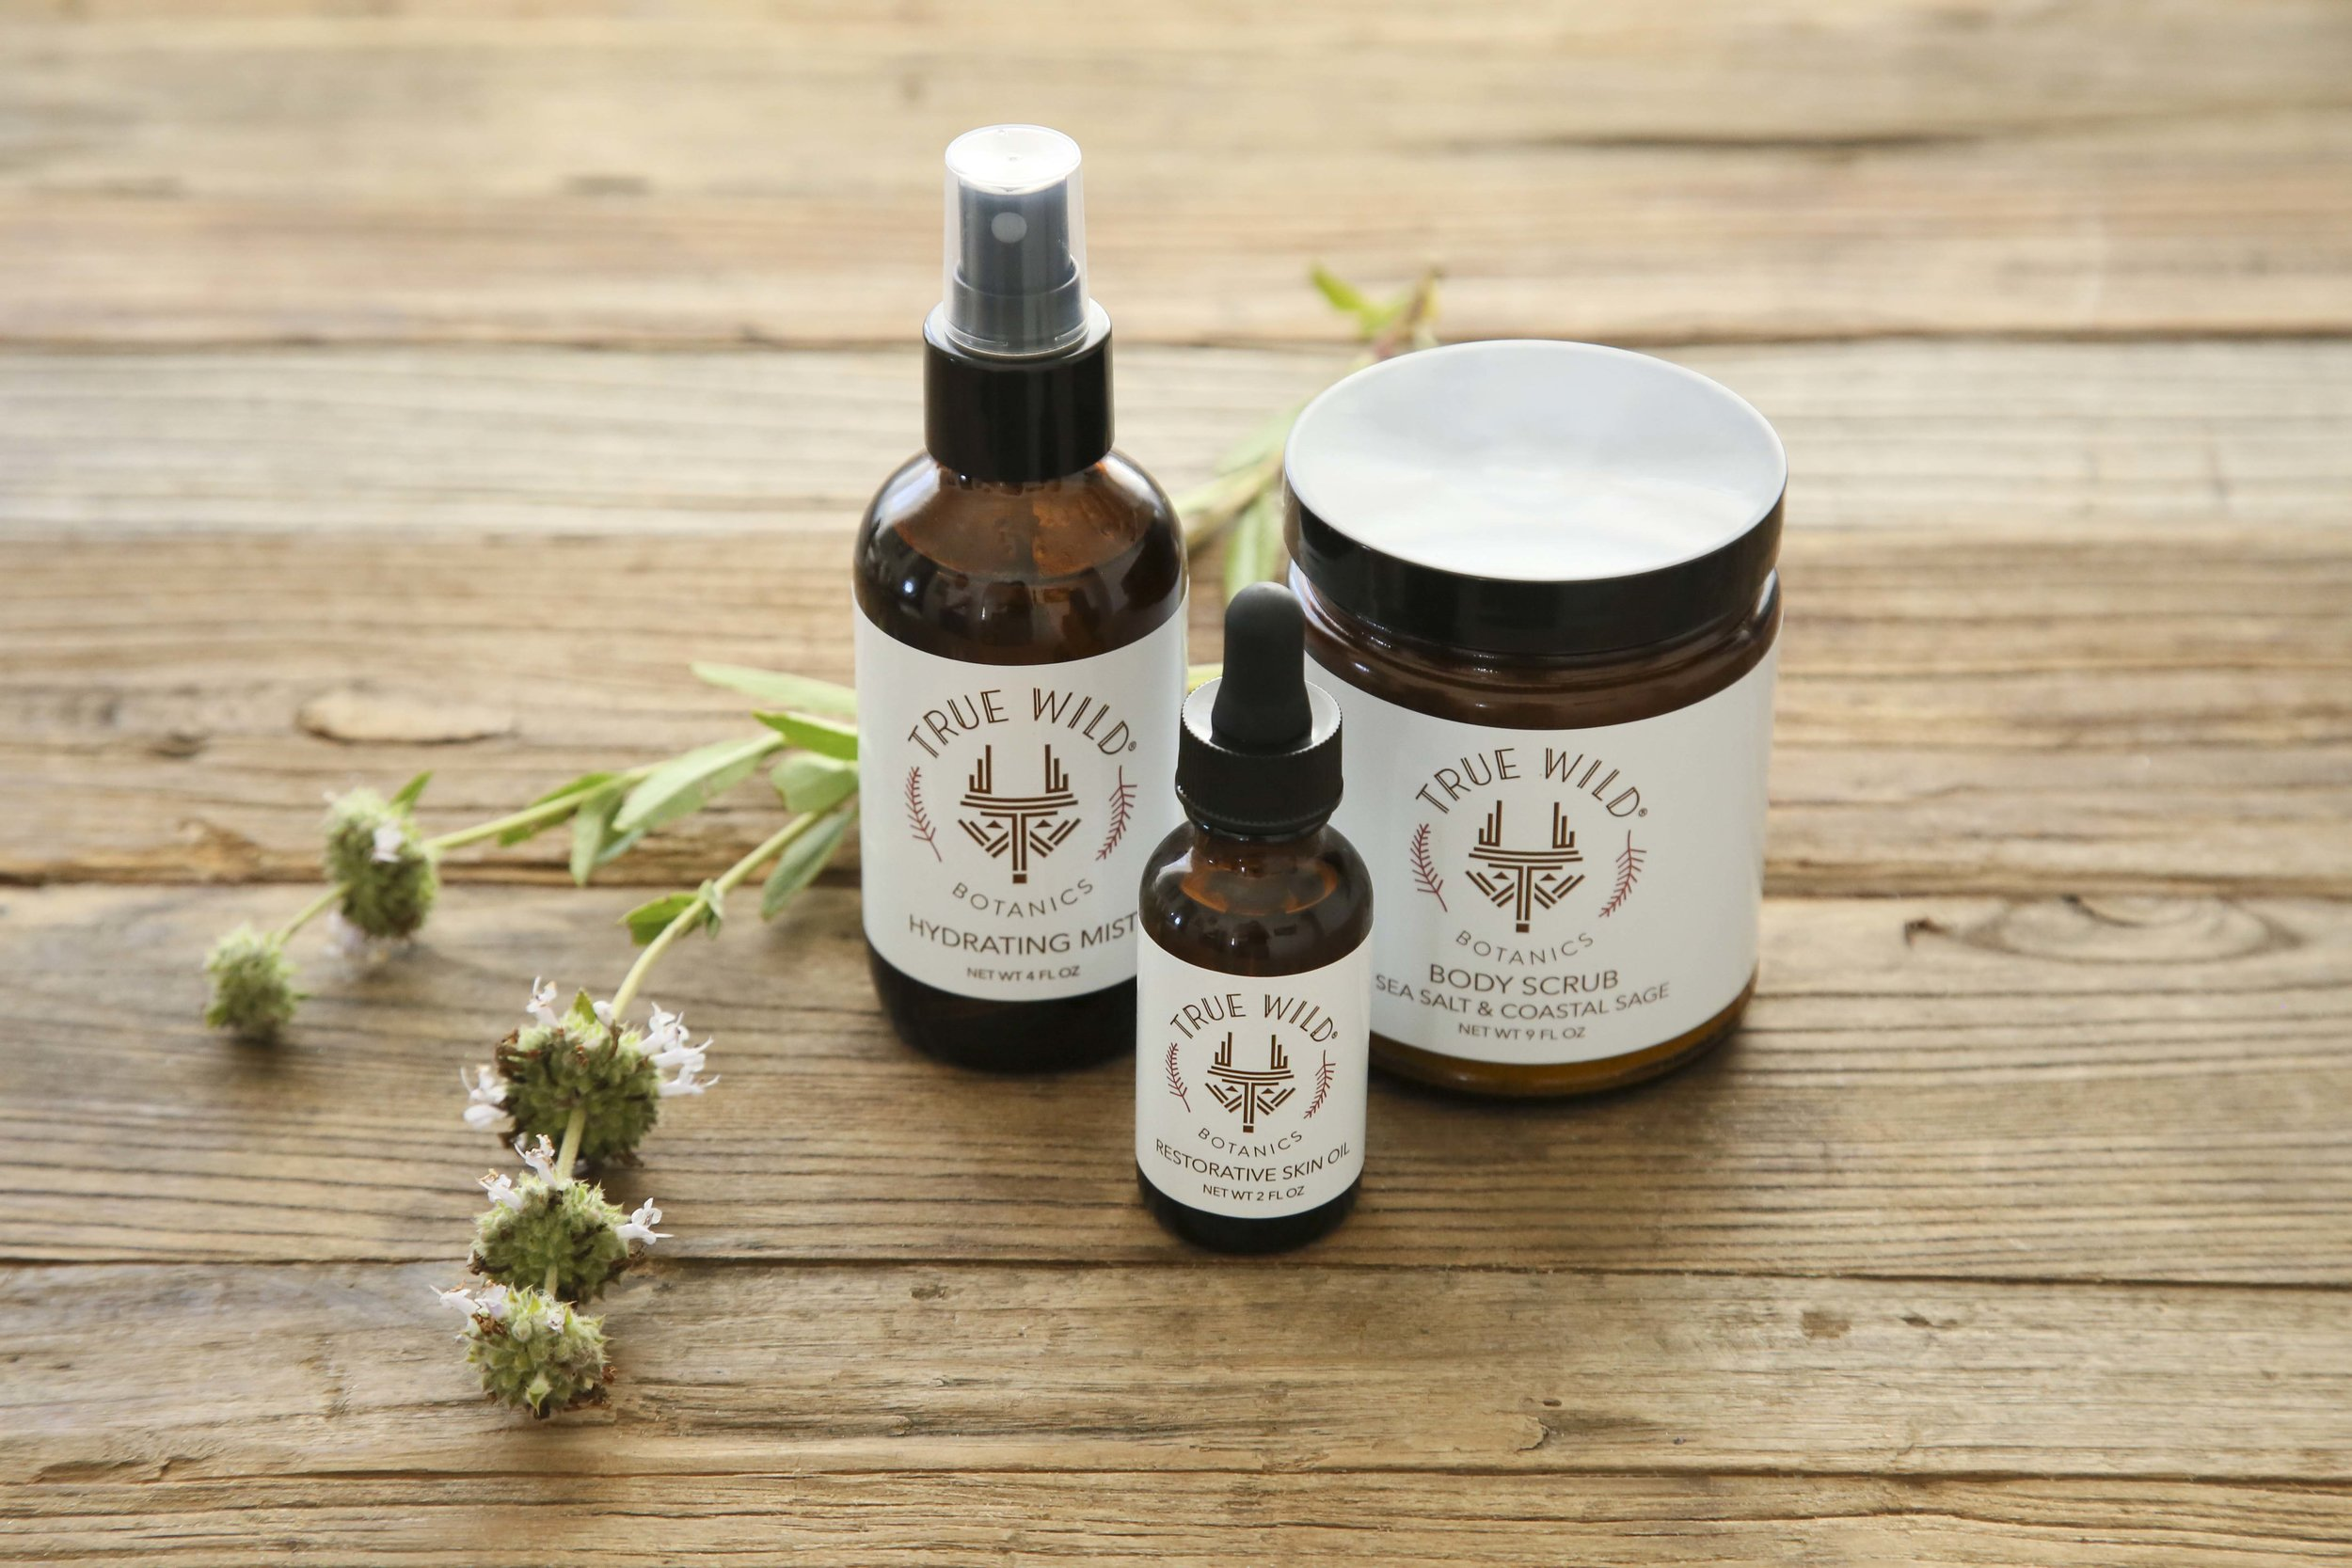 True Wild Botanics-Hydrating Mist-Restorative Skin Oil-Sea Salt and Coastal Sage Scrub